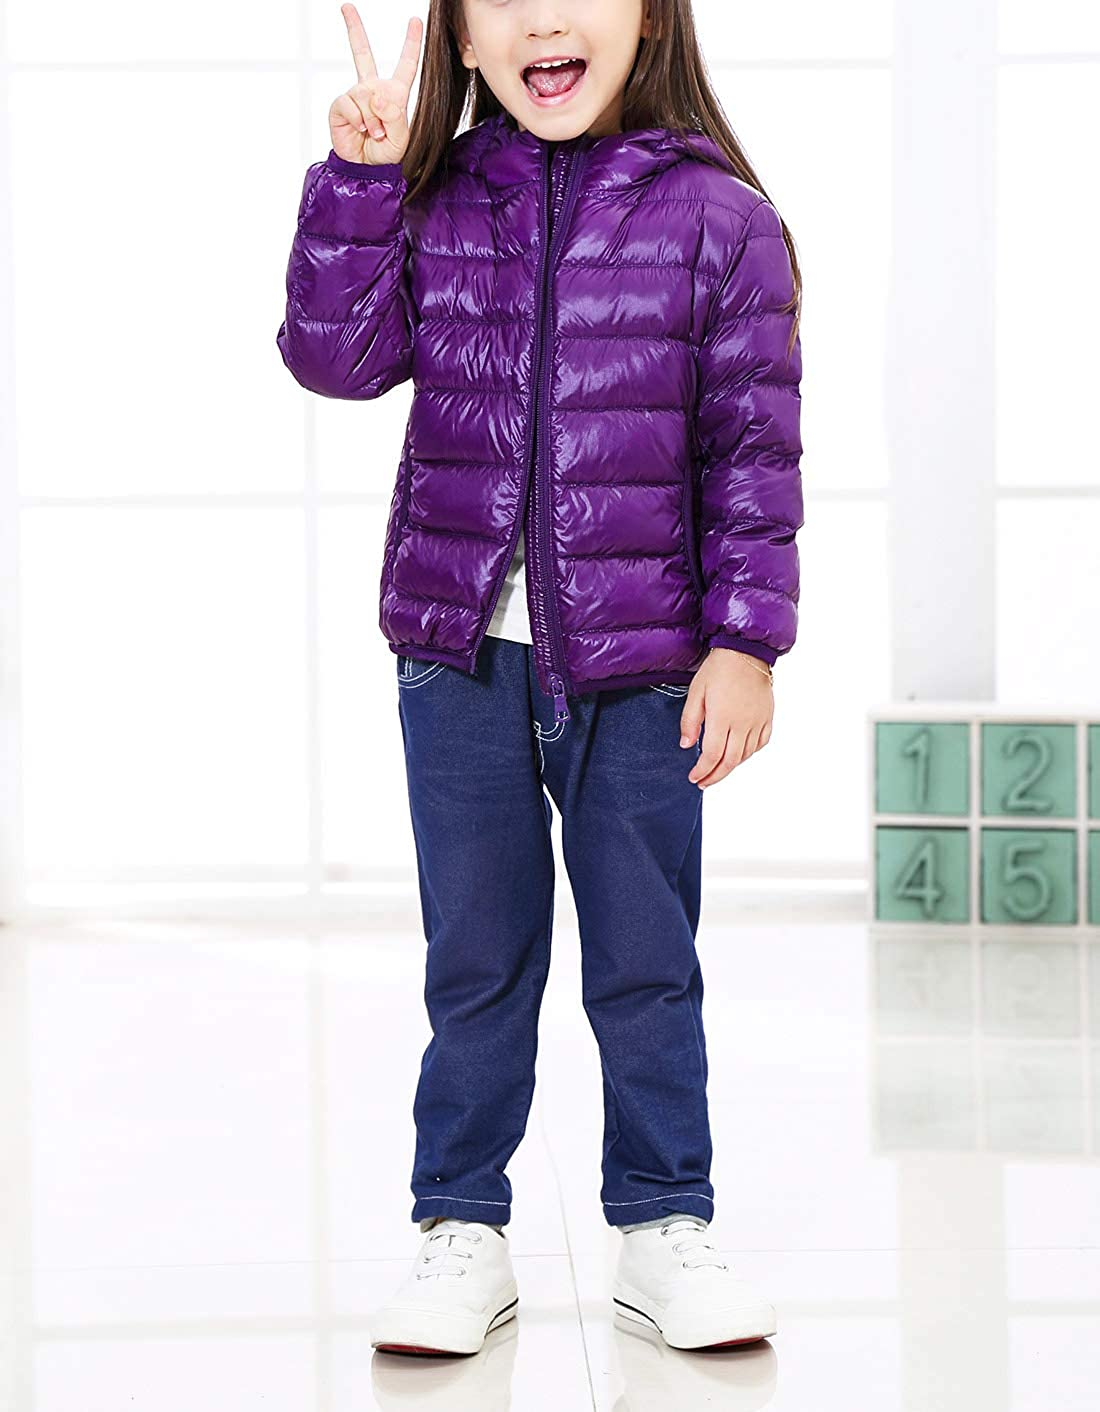 Boys Girls Winter Outfits Lightweight Water-Resistant Packable Hooded Children Winter Casual Durable Puffer Jacket Dark Purple